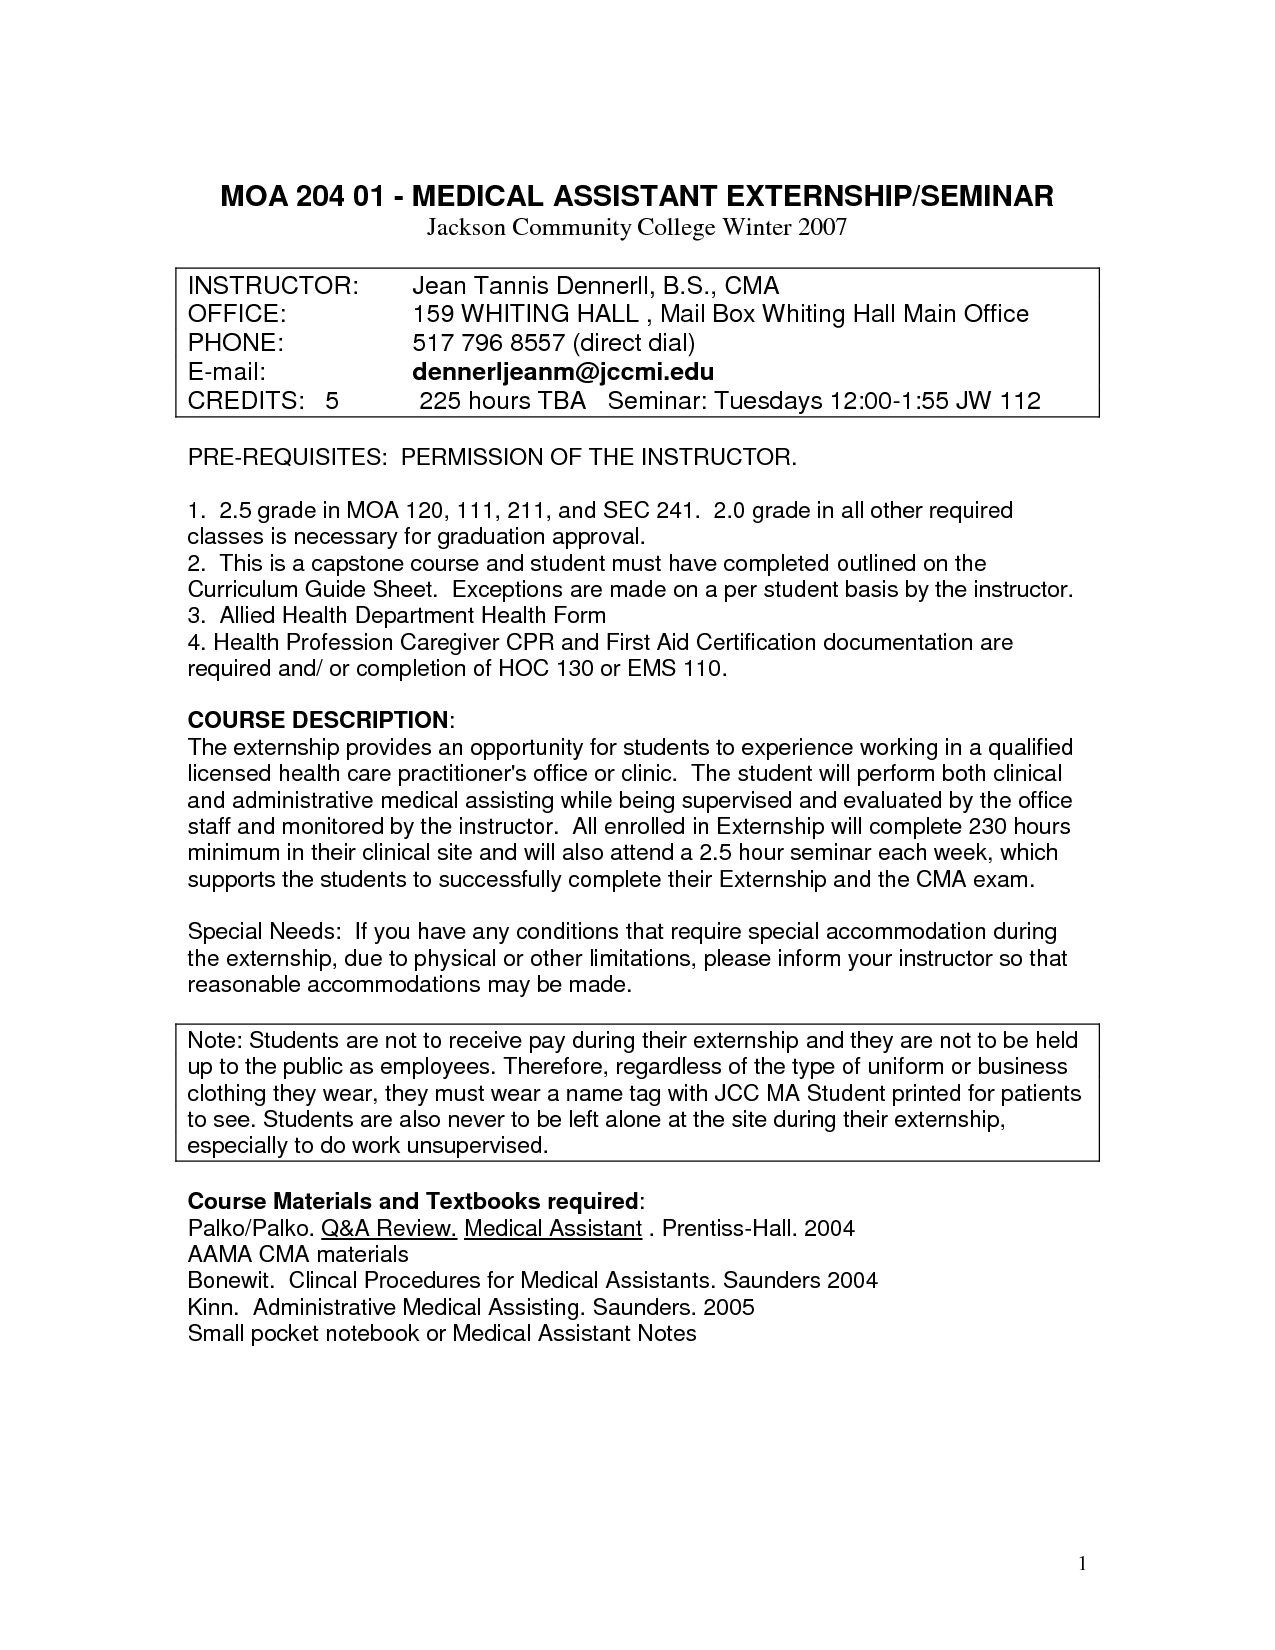 Medical Assistant Cover Letter Template   Sample Resume For Medical  Assistant Cover Letter For Medical